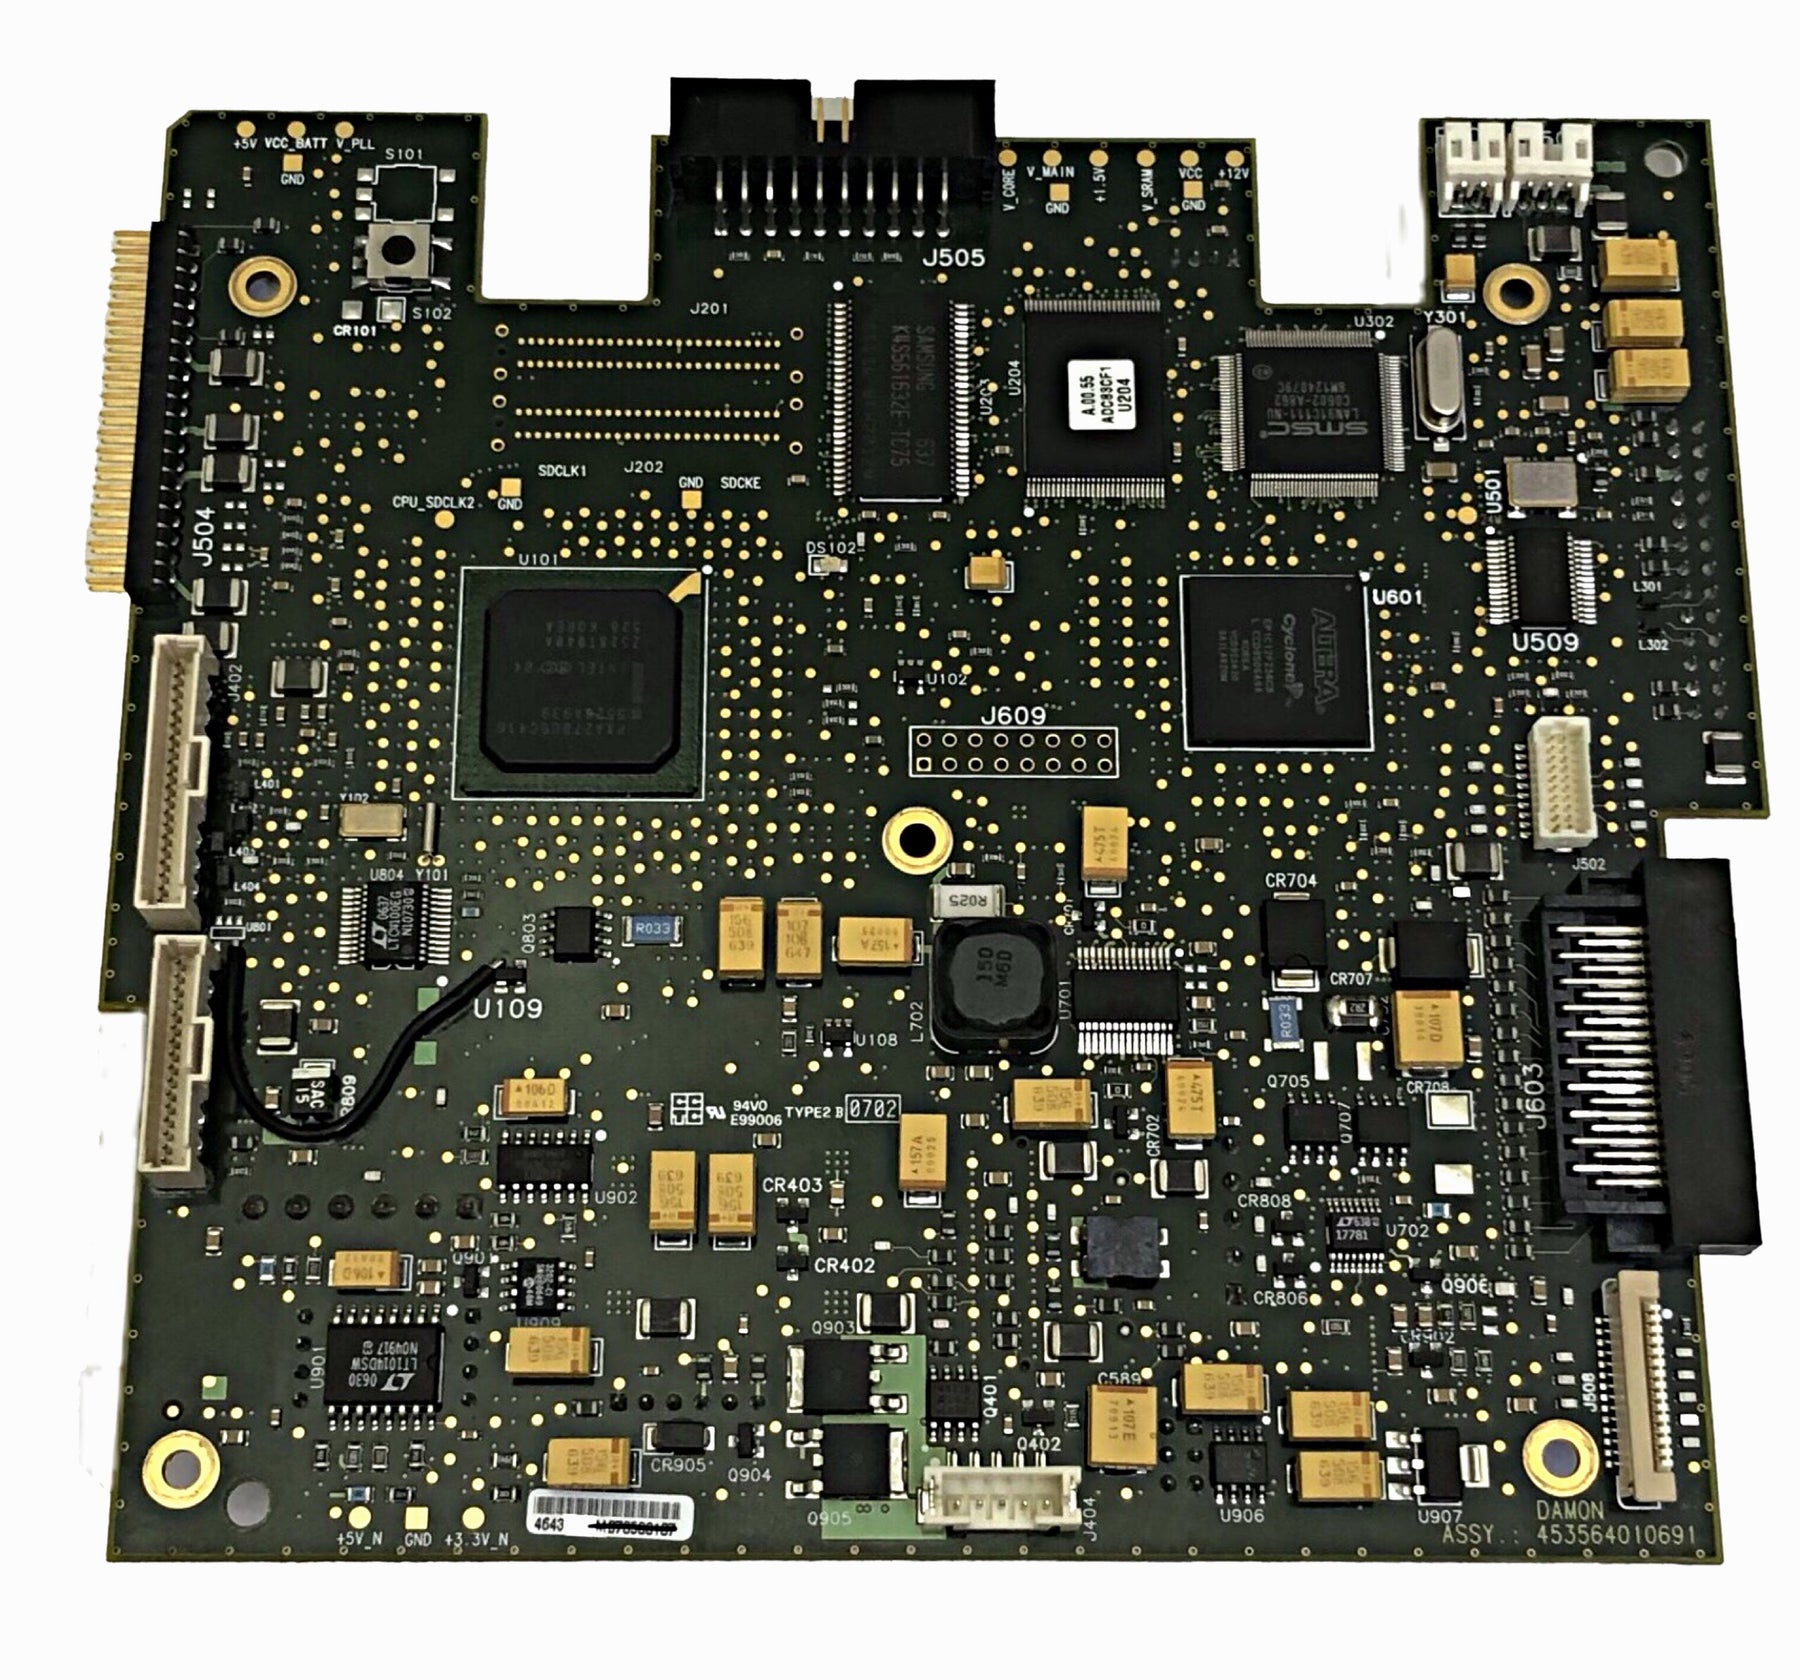 Philips SureSigns VM6 Series Monitor Main Board PCB - Even Biomedical